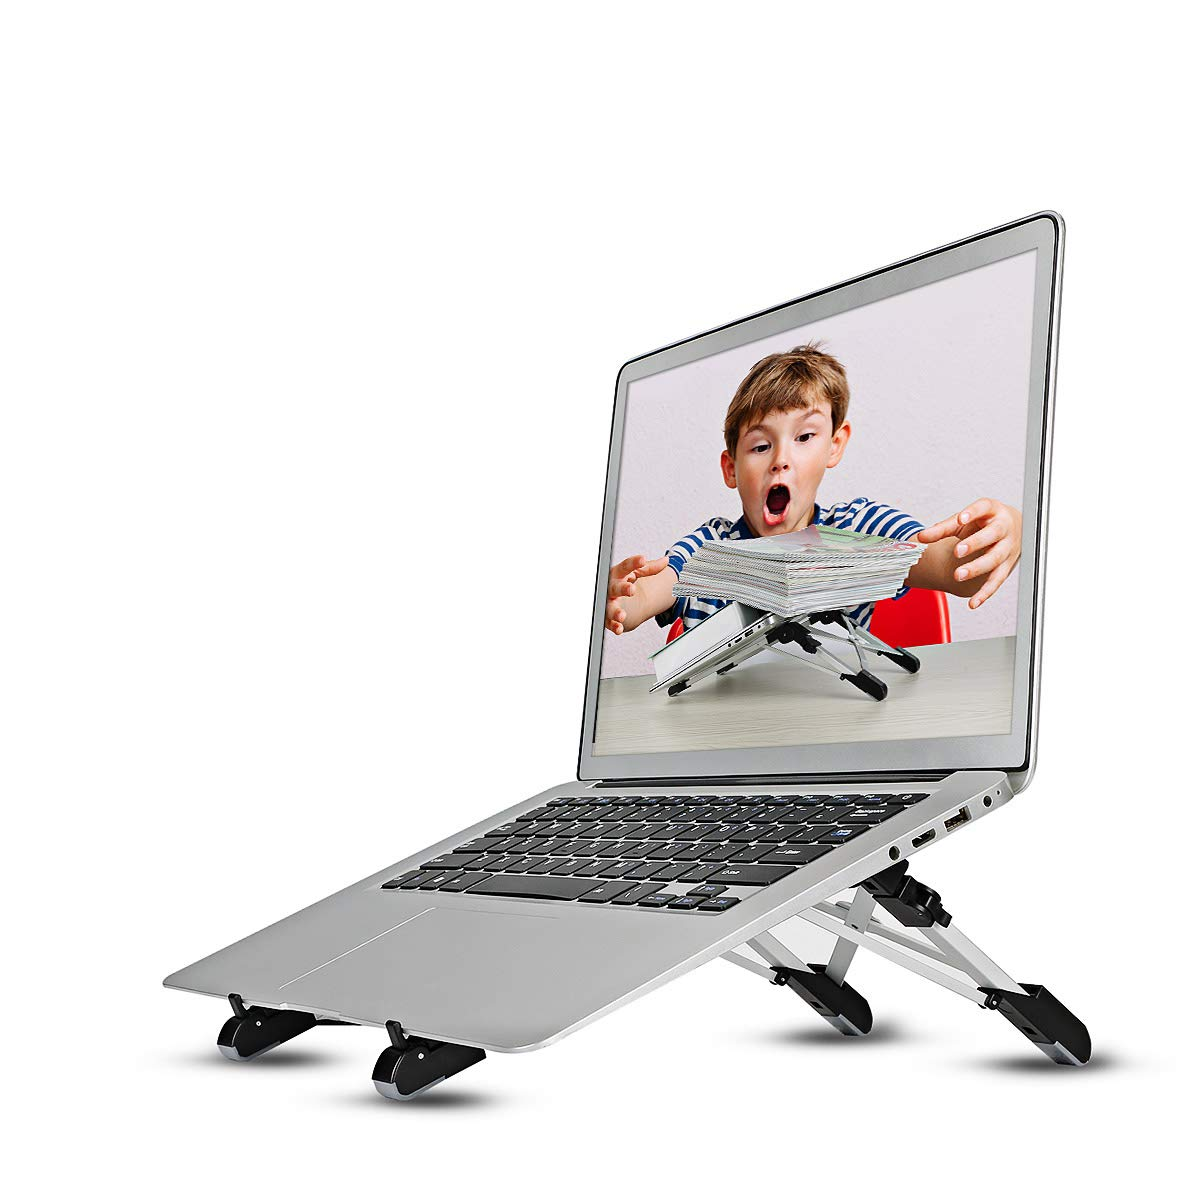 Laptop Stand Adjustable Tablet Stand Ergonomic Folding Laptop Stand Holder Lightweight Space-saving Cooling Gaming Riser Compatible for 8